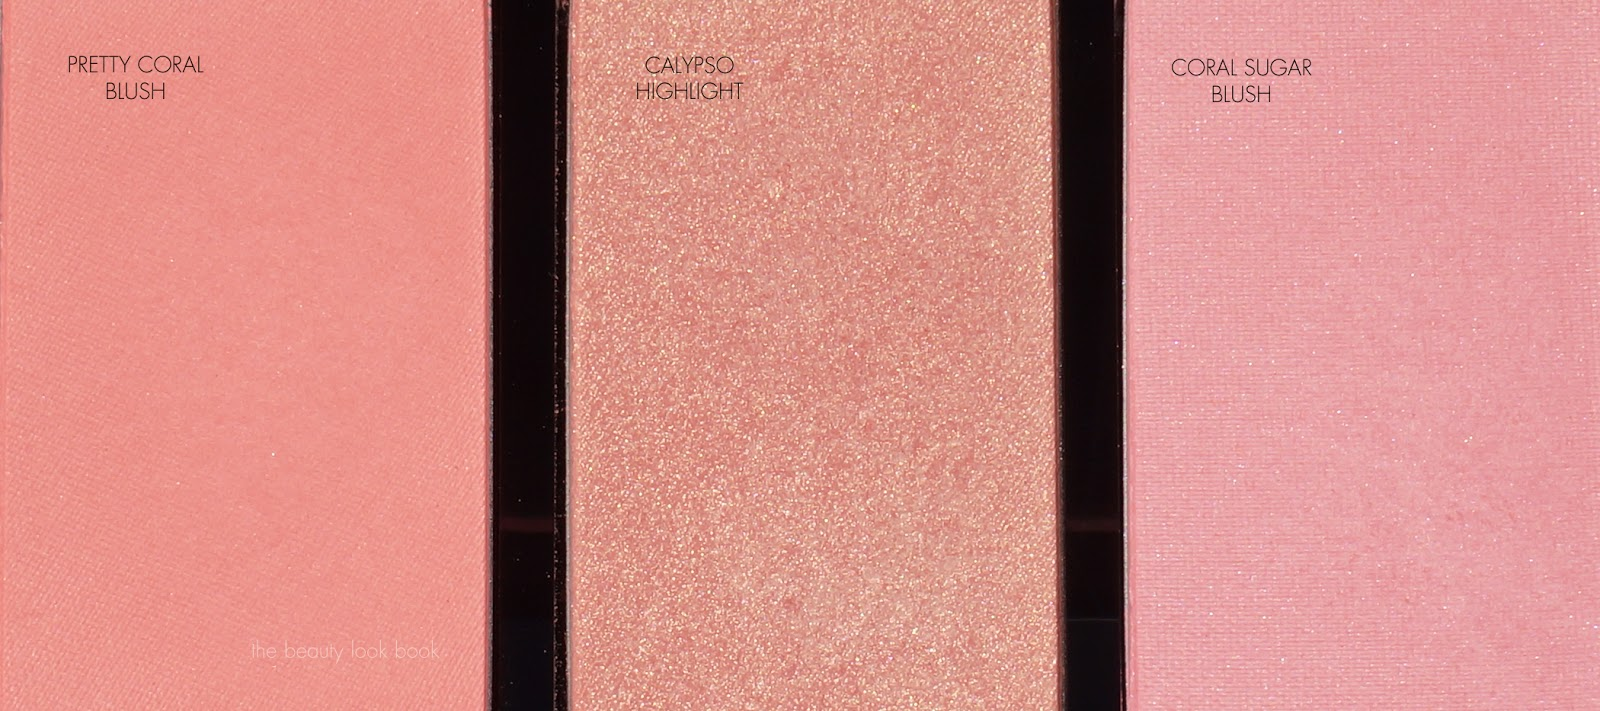 Bobbi Brown Calypso Cheek Palette - Limited Edition | The Beauty ...